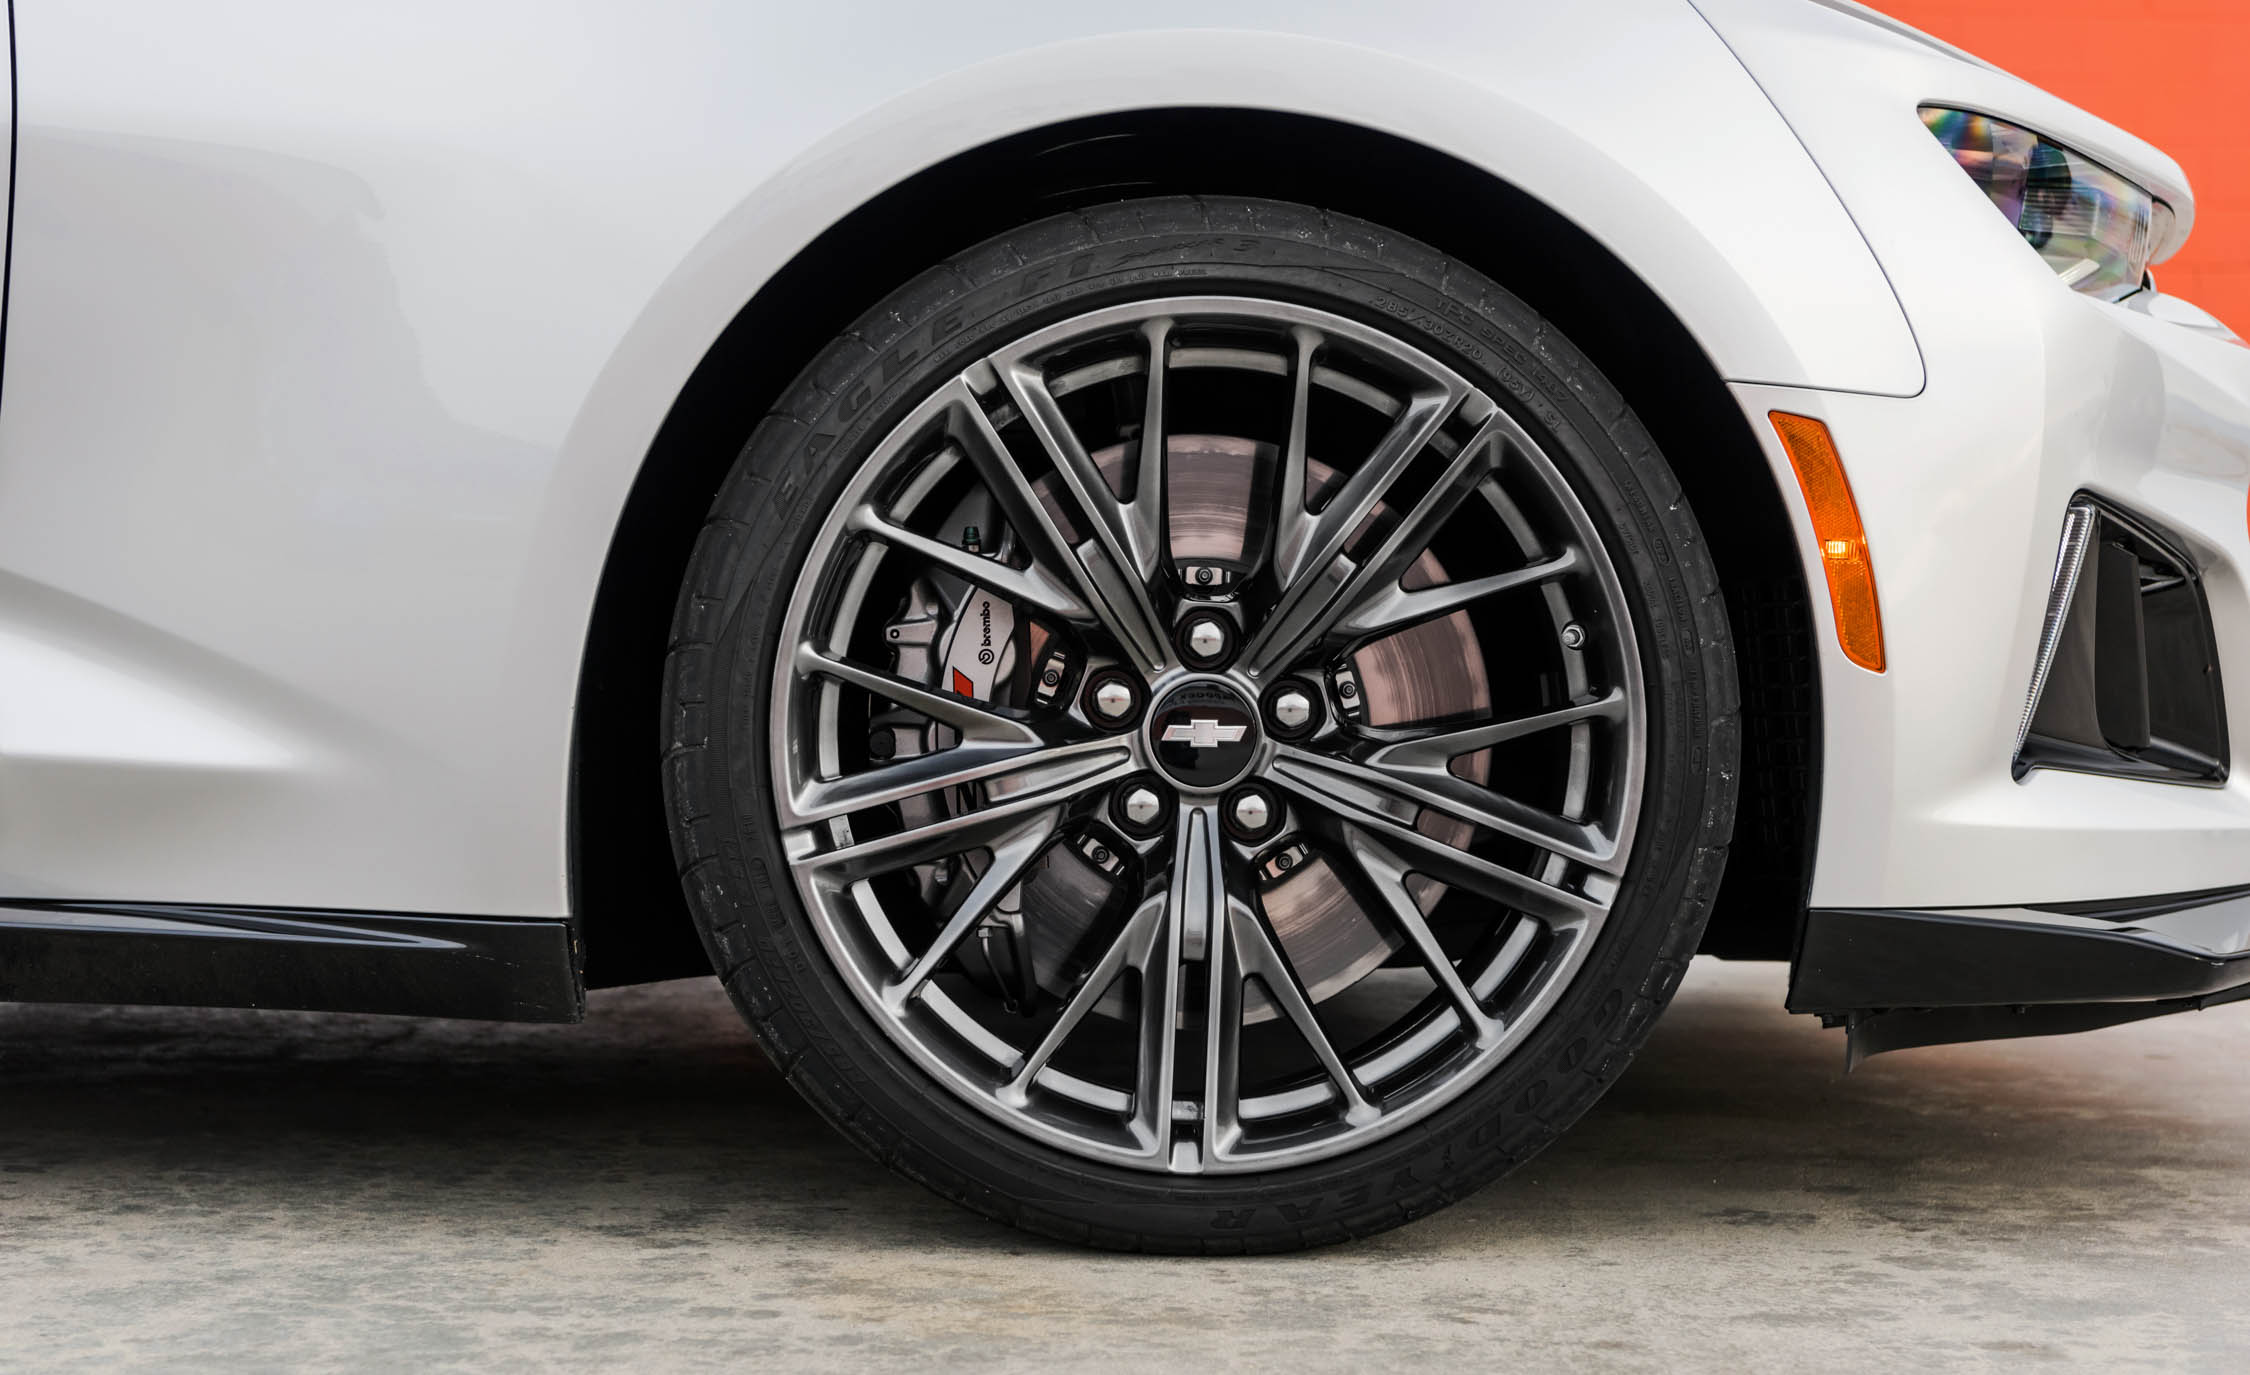 2017 Chevrolet Camaro ZL1 White Exterior View Velg (Photo 55 of 62)